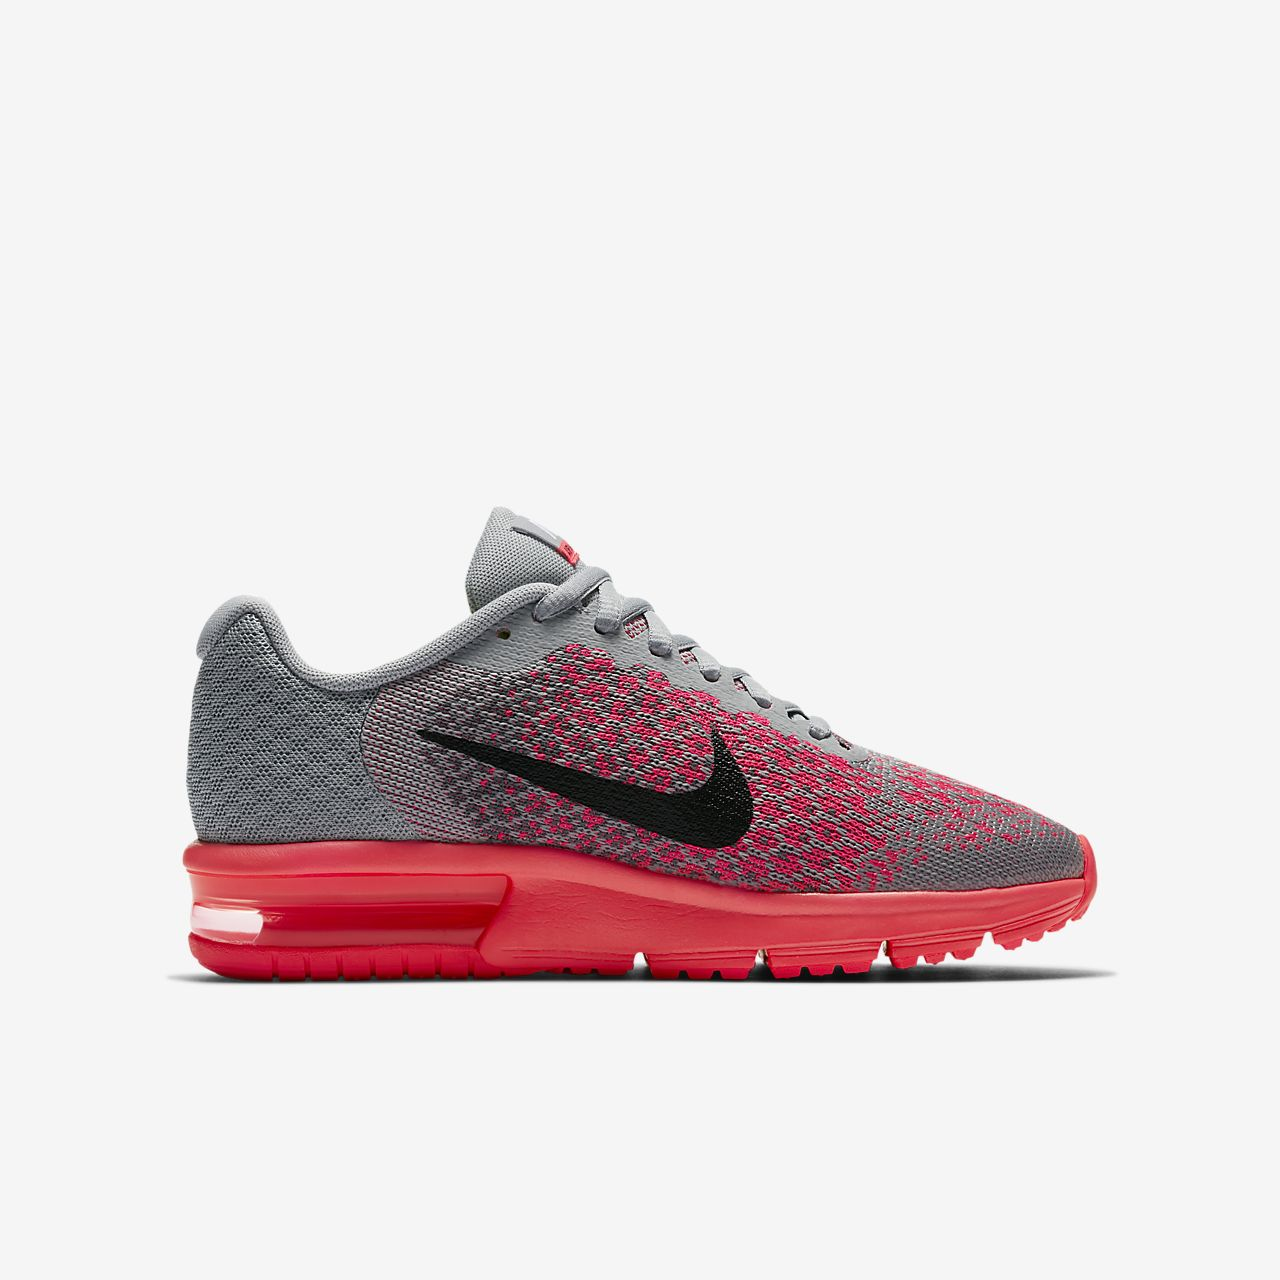 lower price with d4c33 2210d Nike Air Max Sequent 2